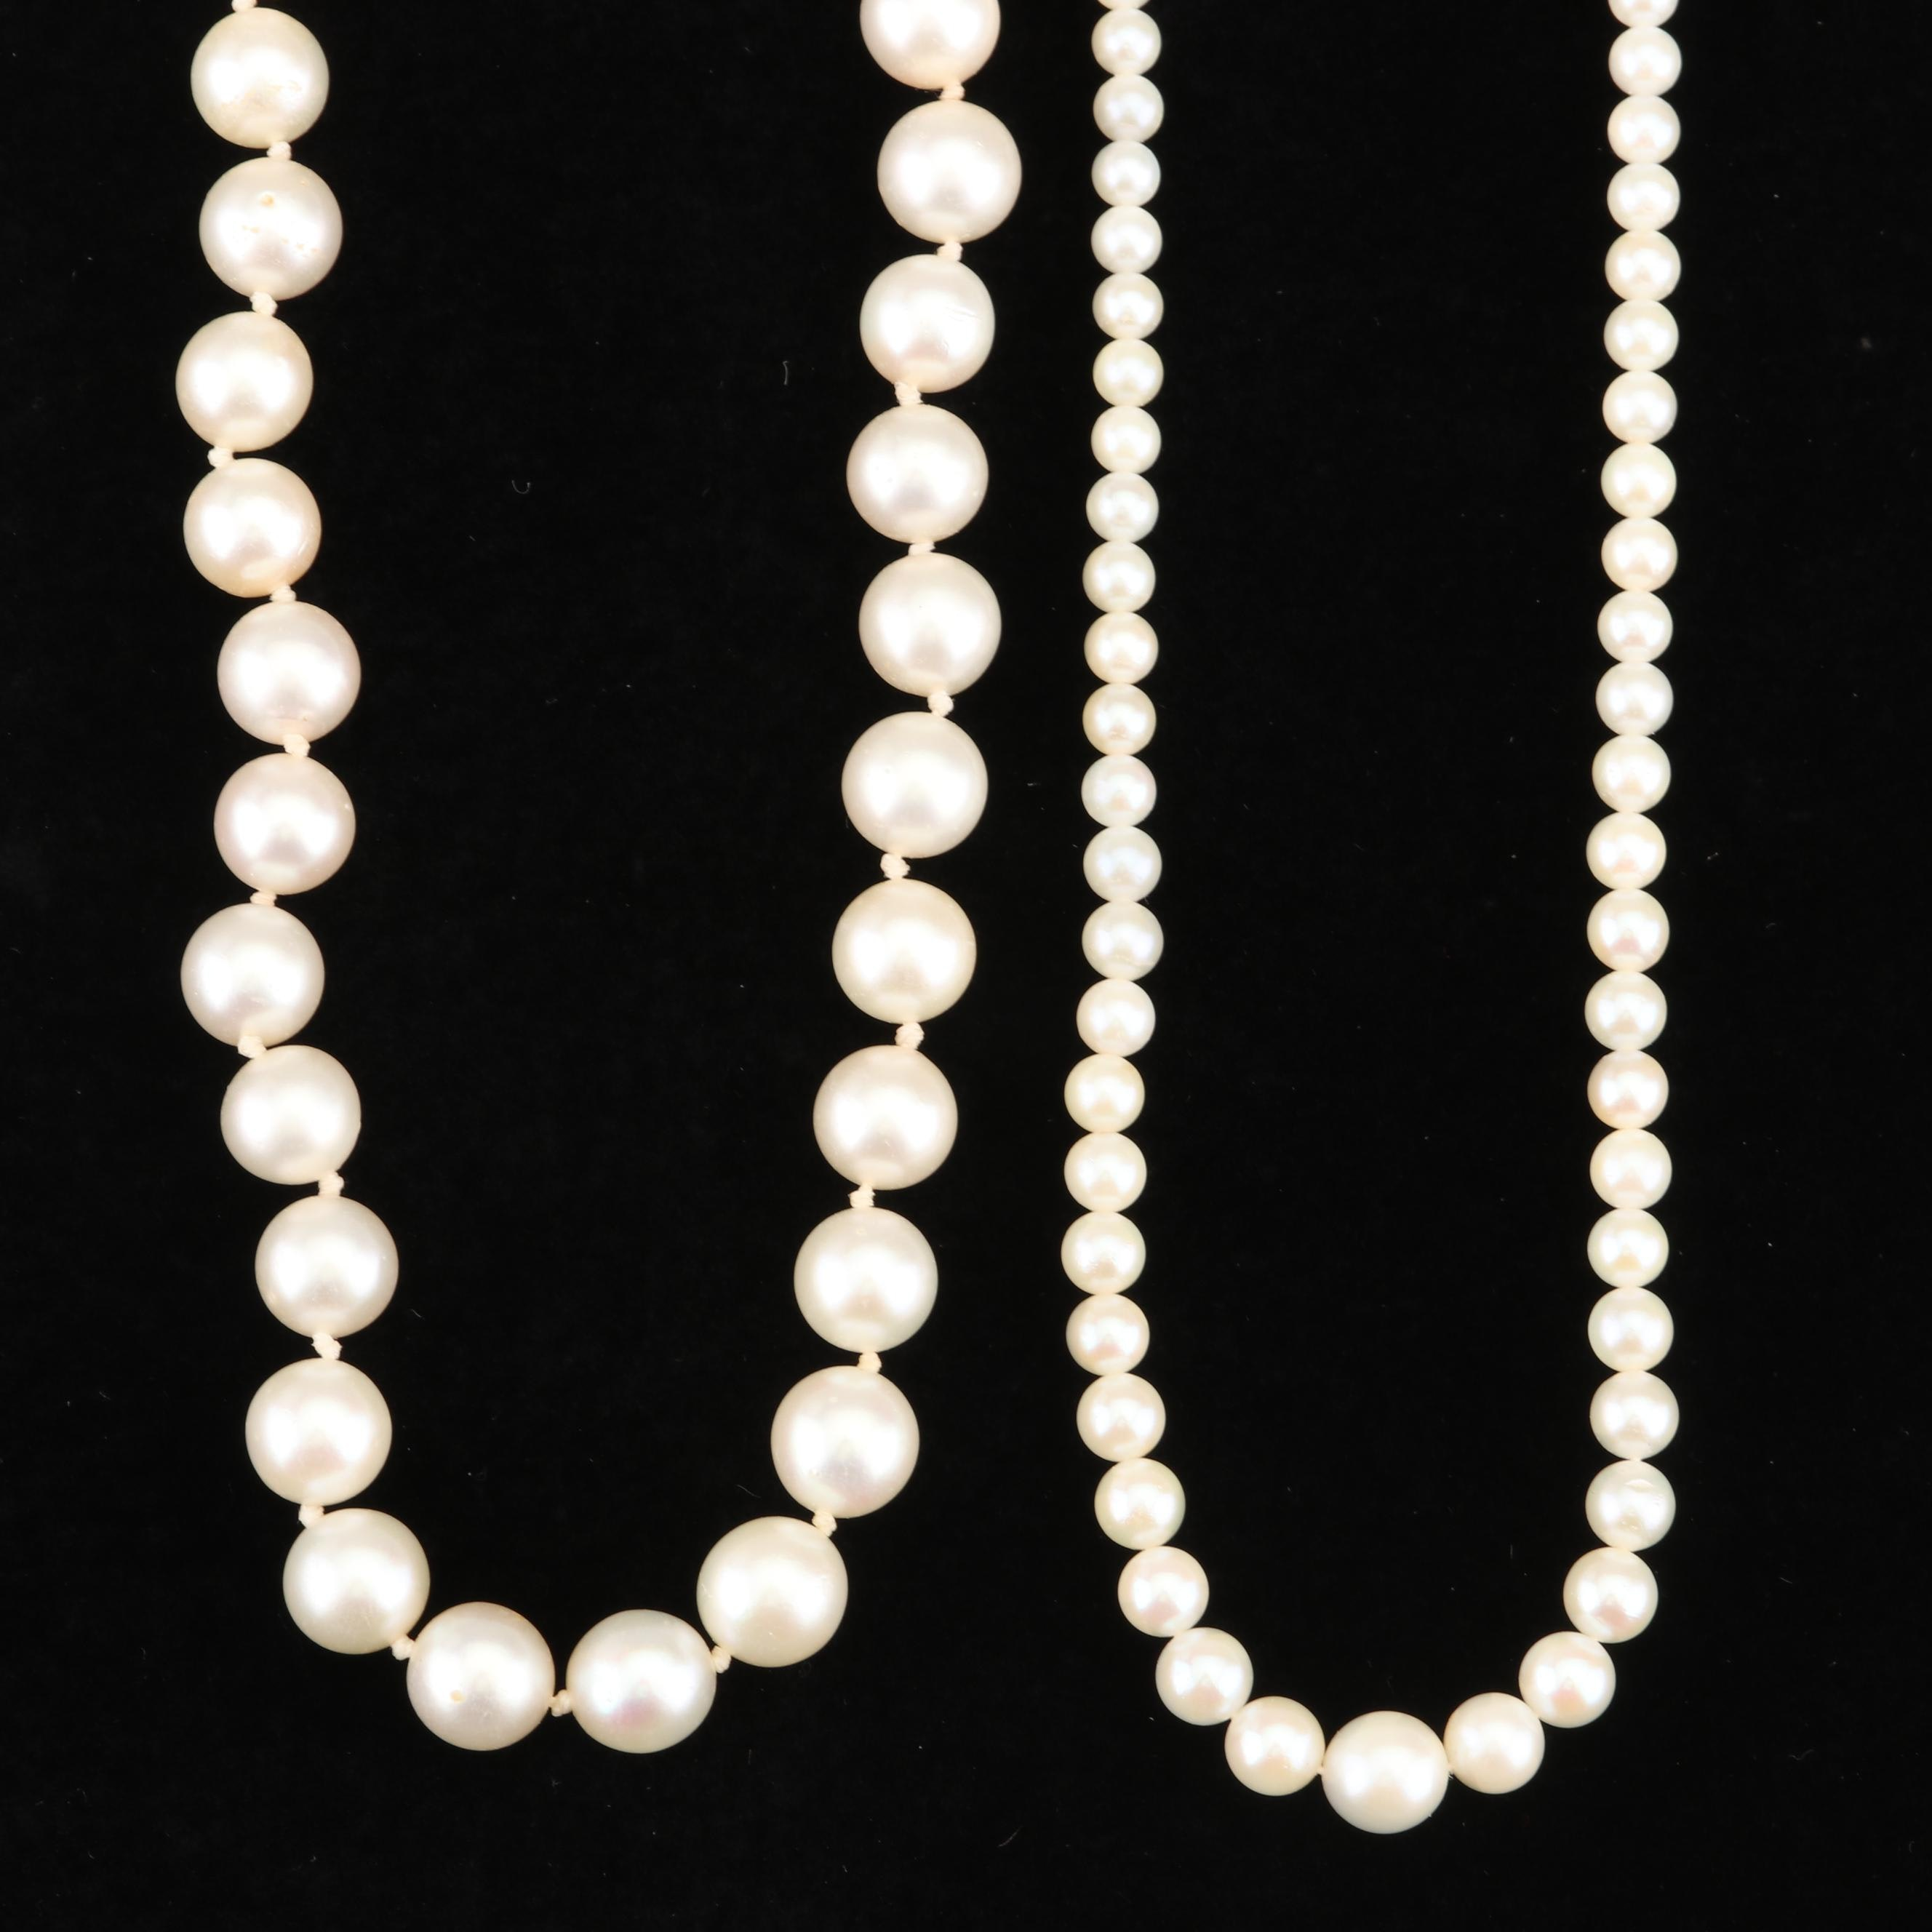 Cultured Pearl Necklaces with 14K White Gold Clasps